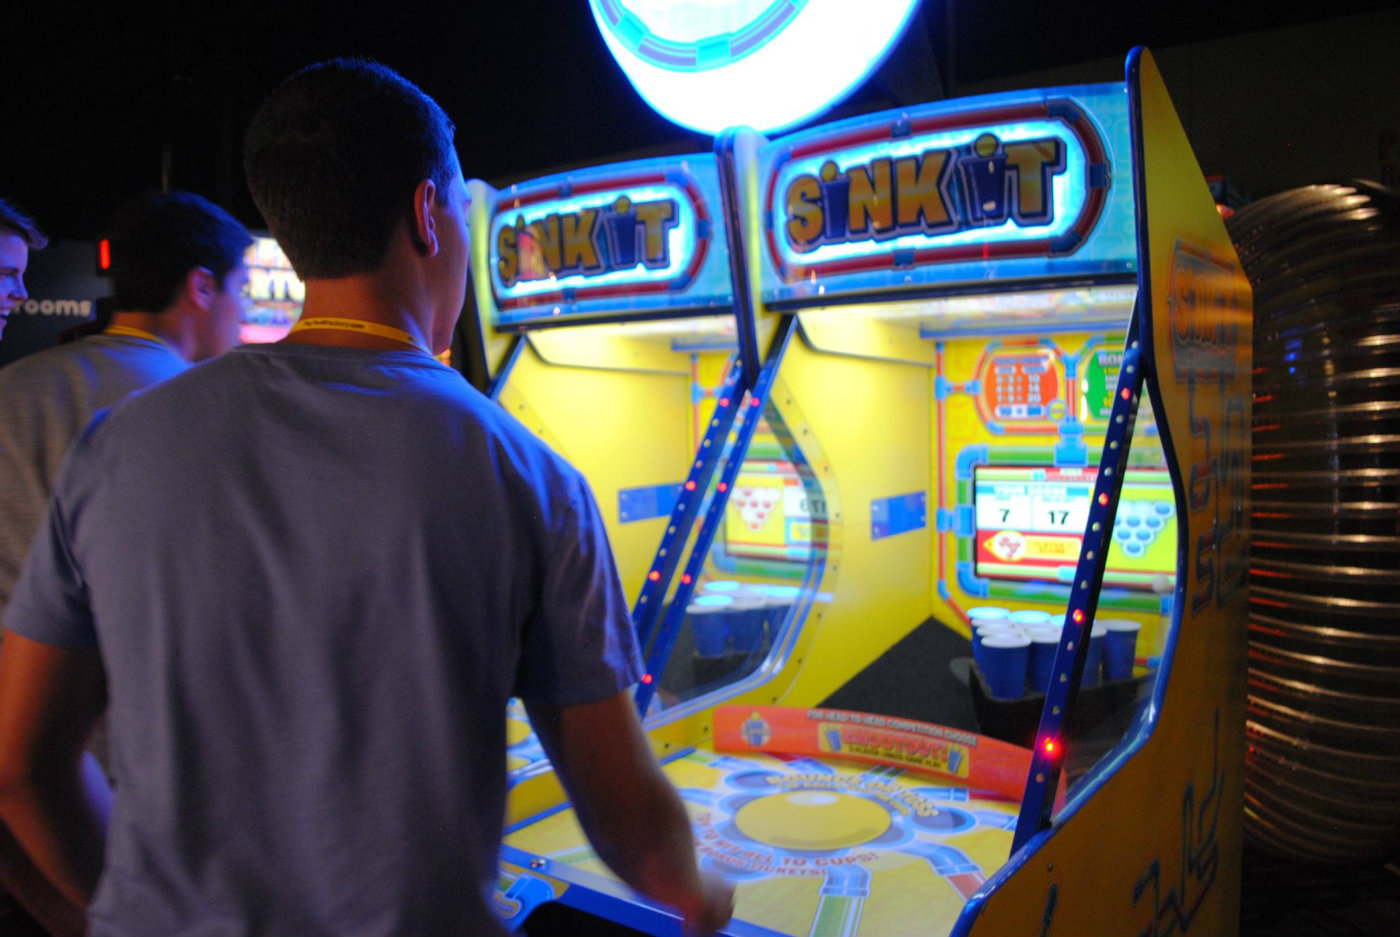 Image of people playing arcade games at Big Thrill Factory arcade